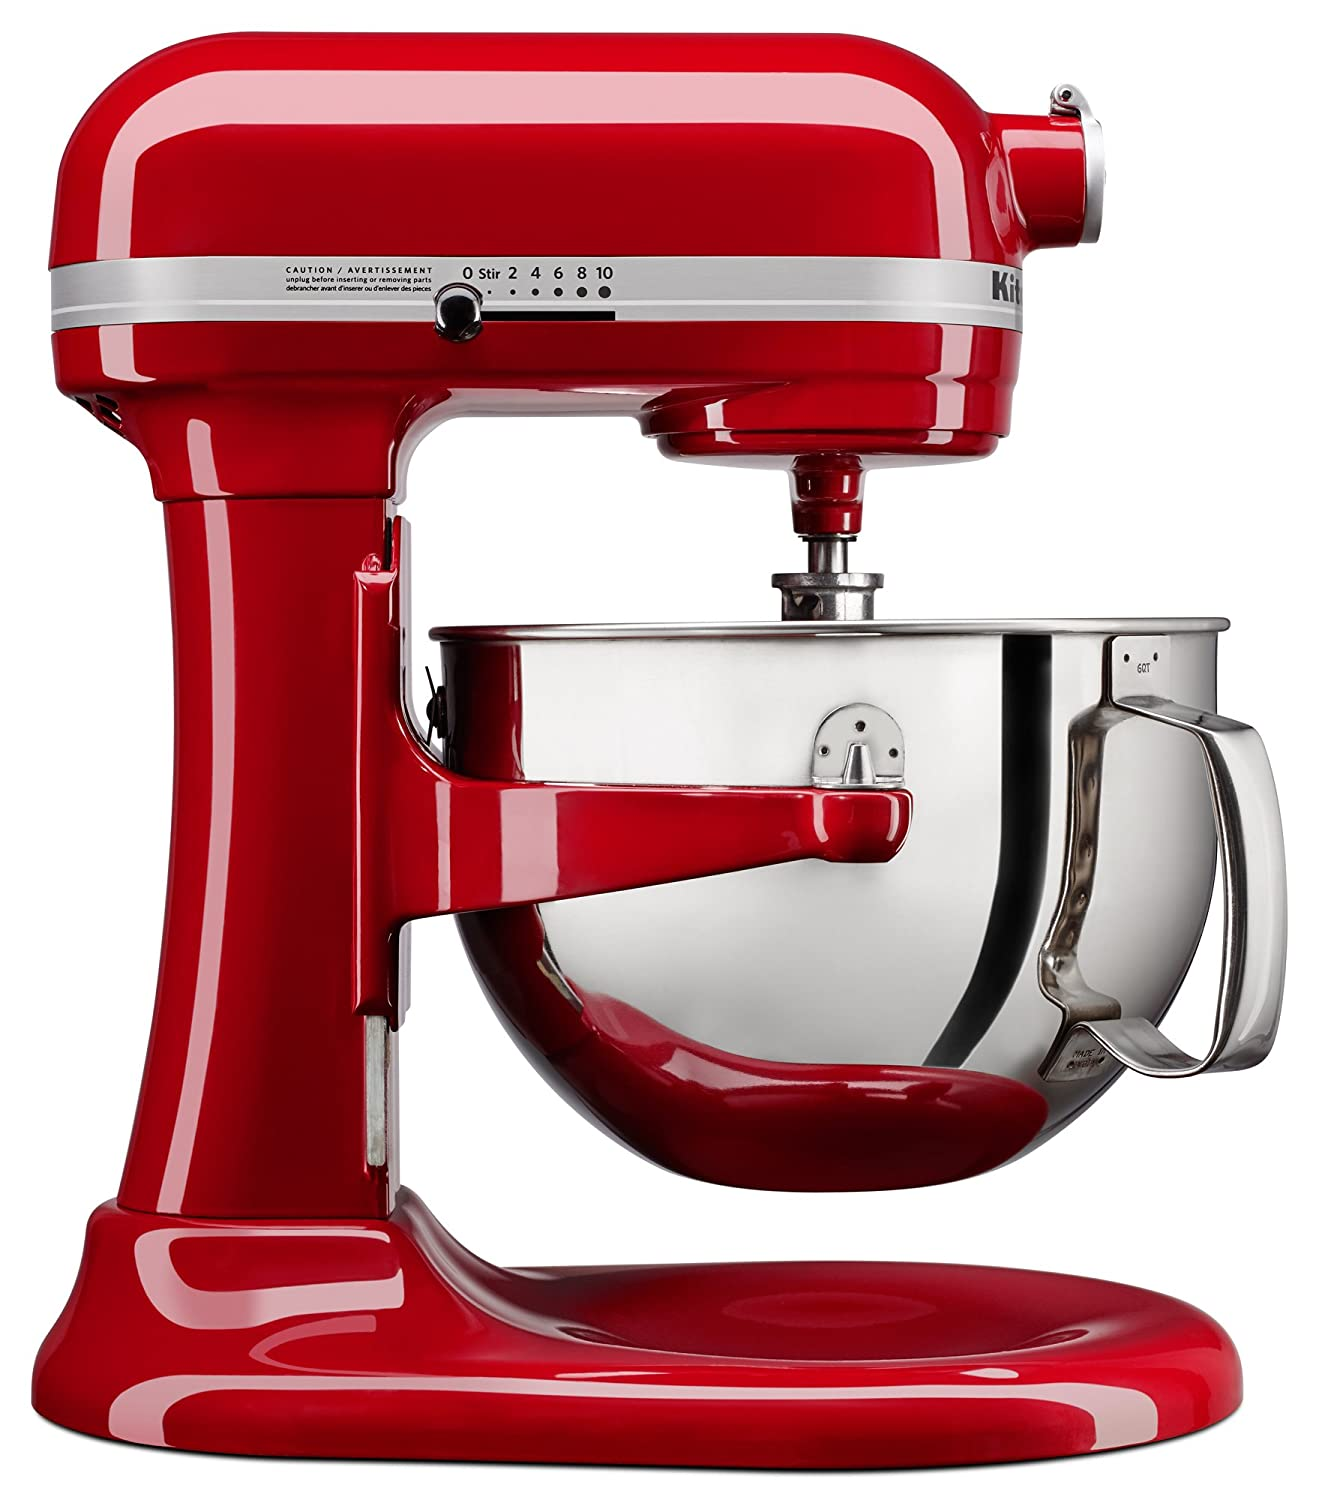 KitchenAid Professional 6Qt Bowl Mixer